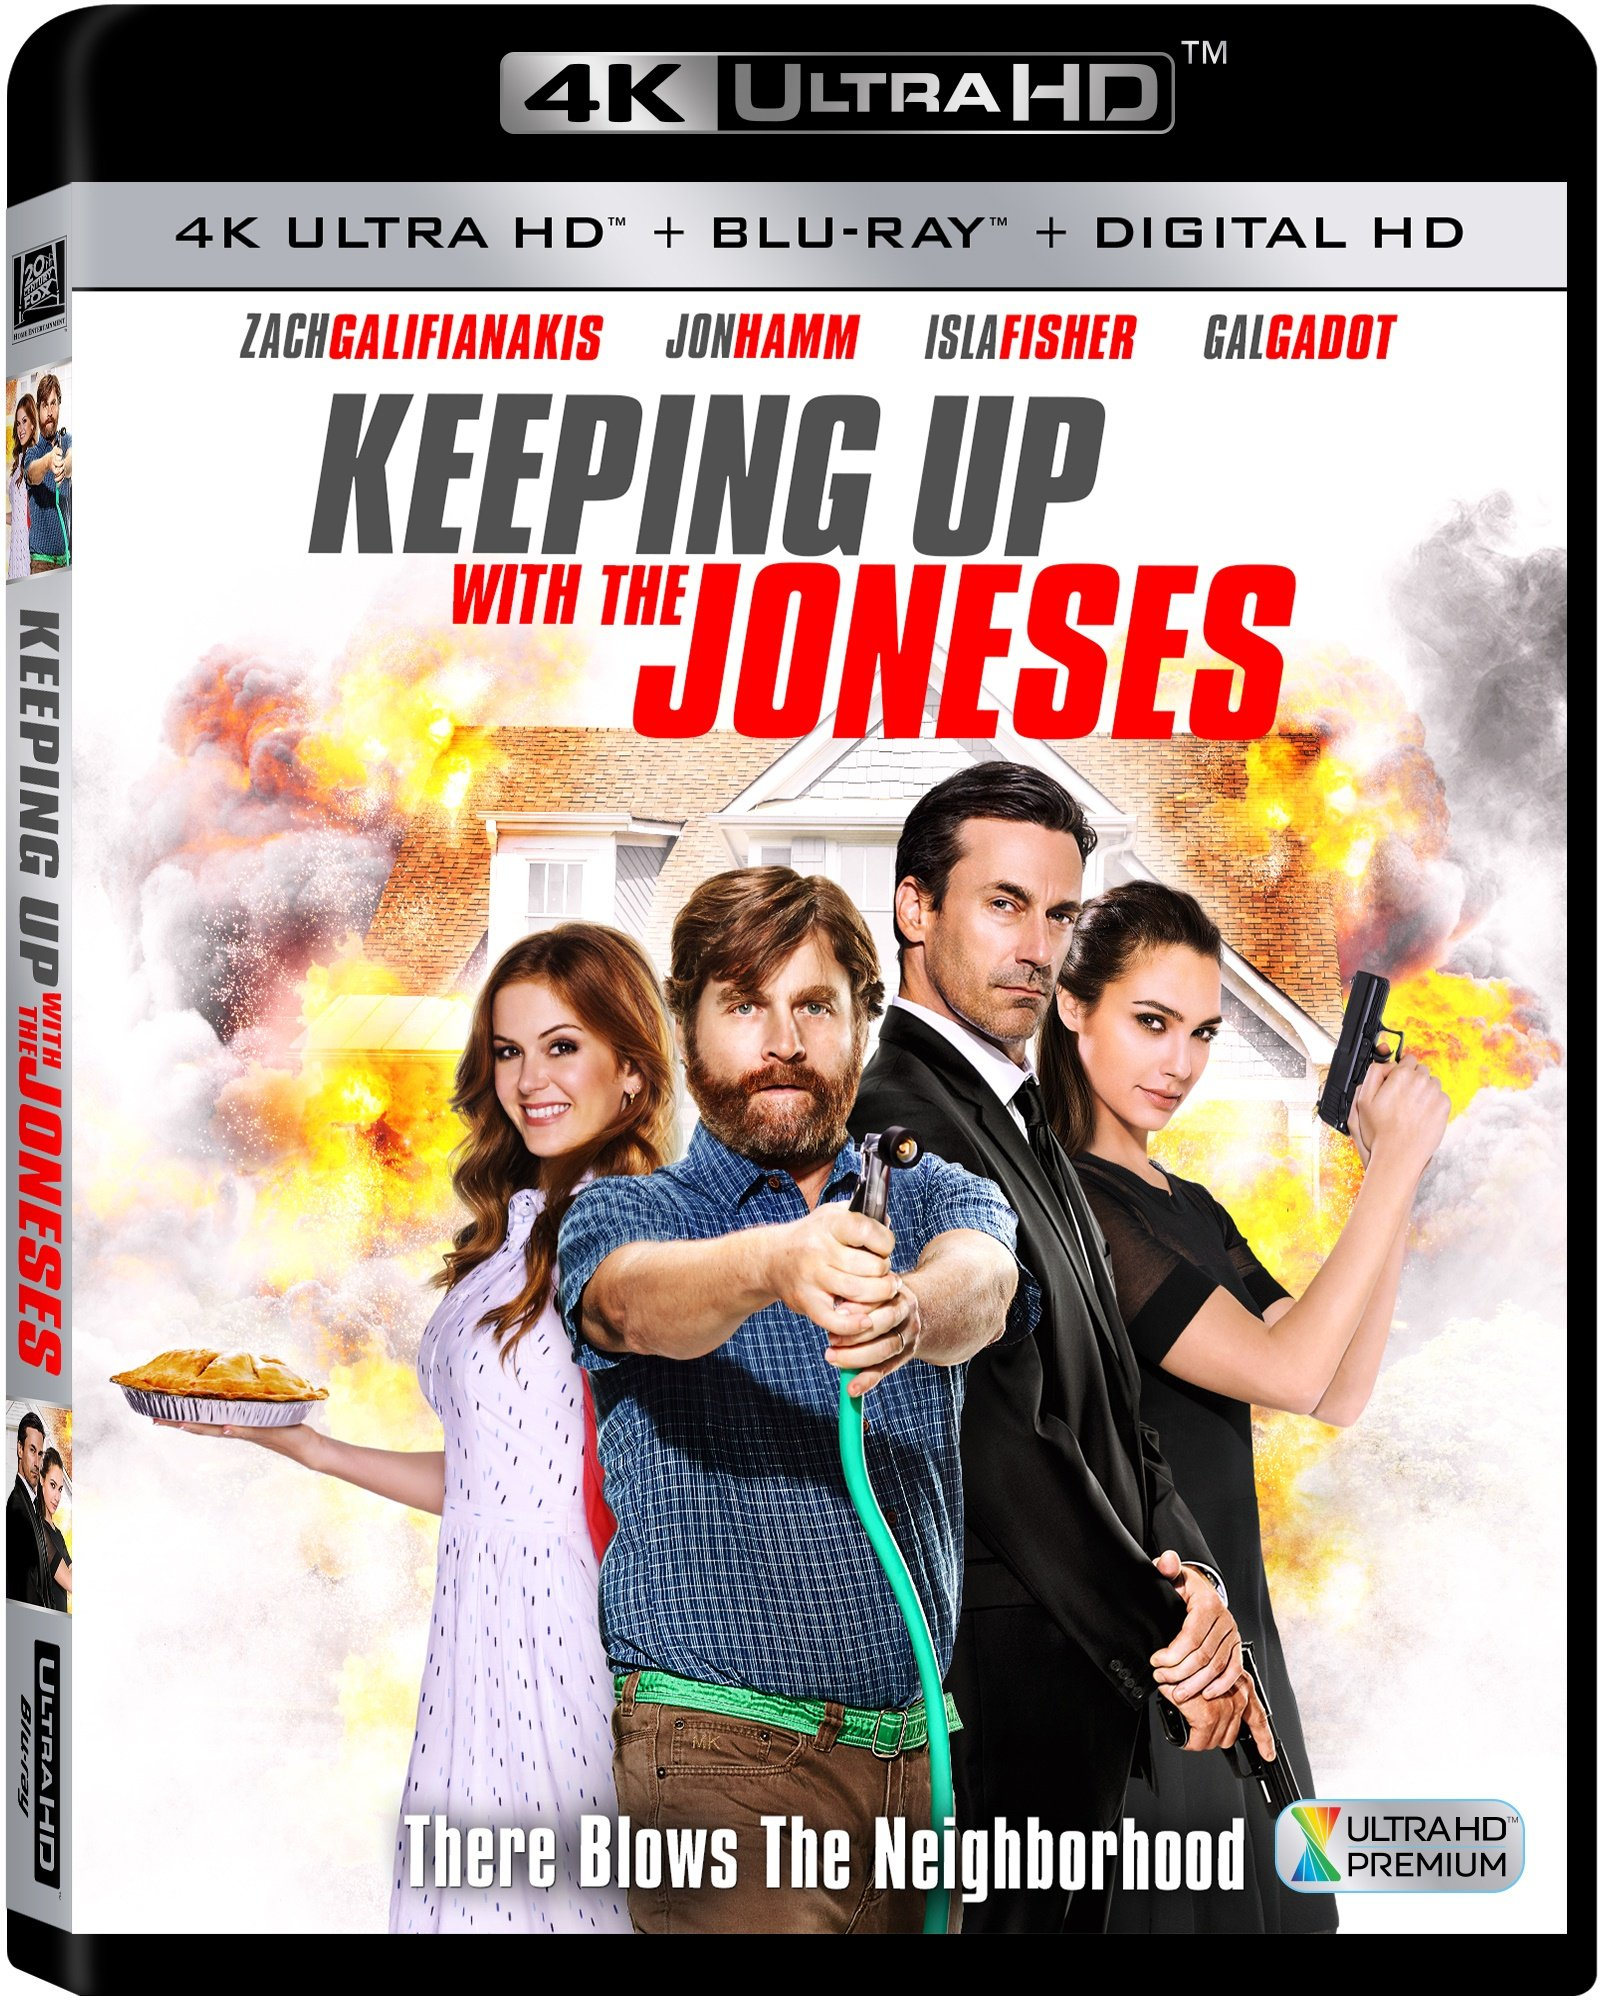 4K Blu-ray : Keeping Up With The Joneses (4K Mastering, Dubbed, , Digital Theater System, Dolby)